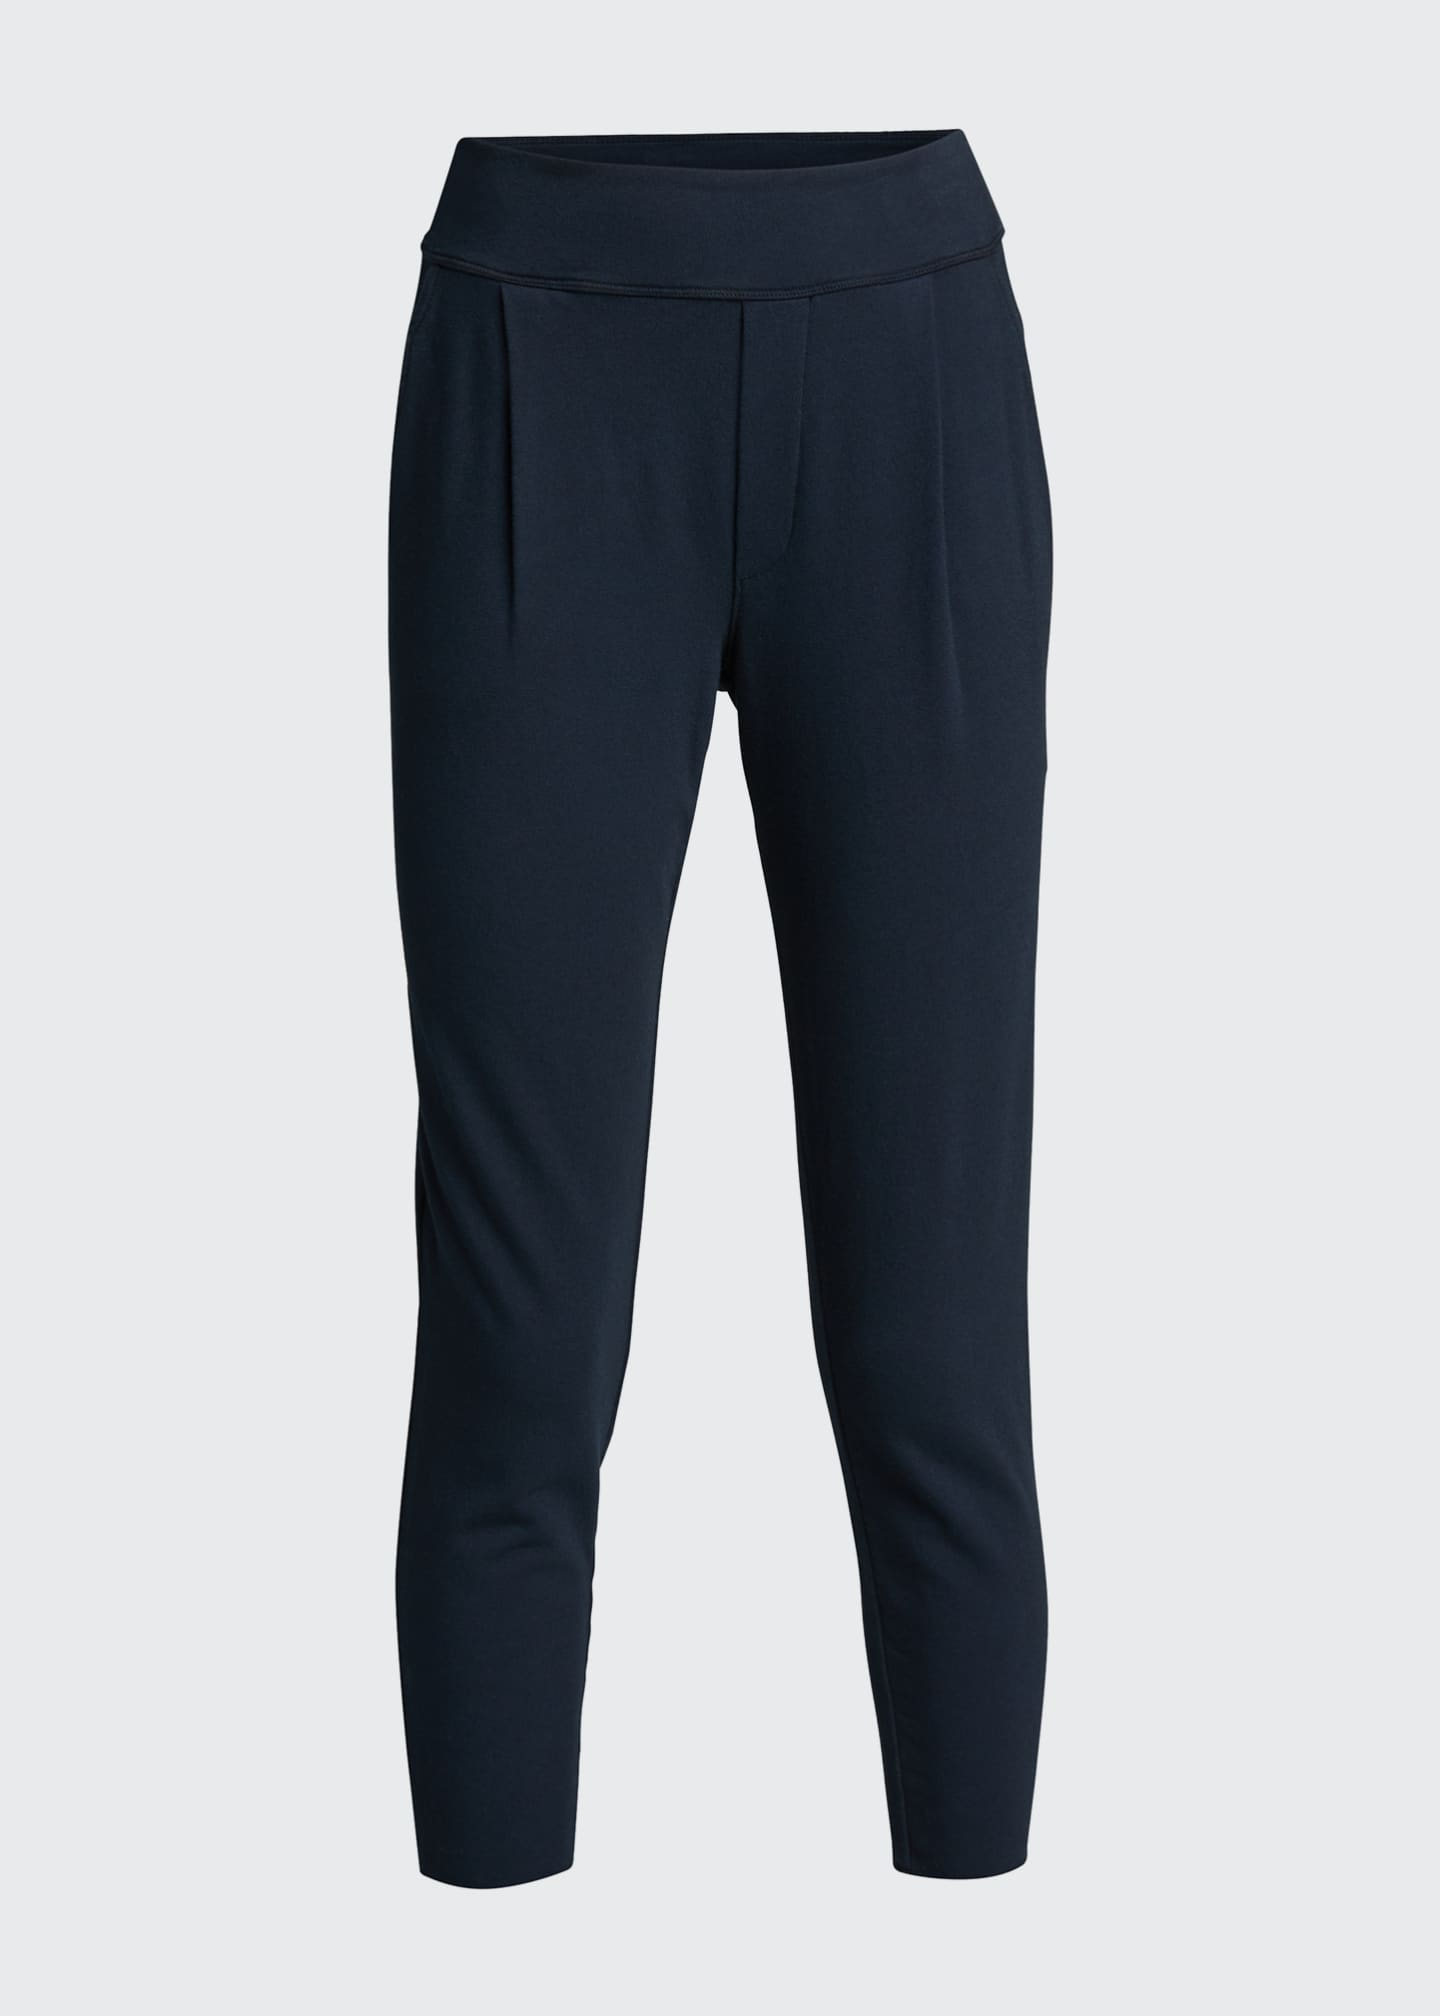 Image 5 of 5: French-Terry Pleated Jogger Pants